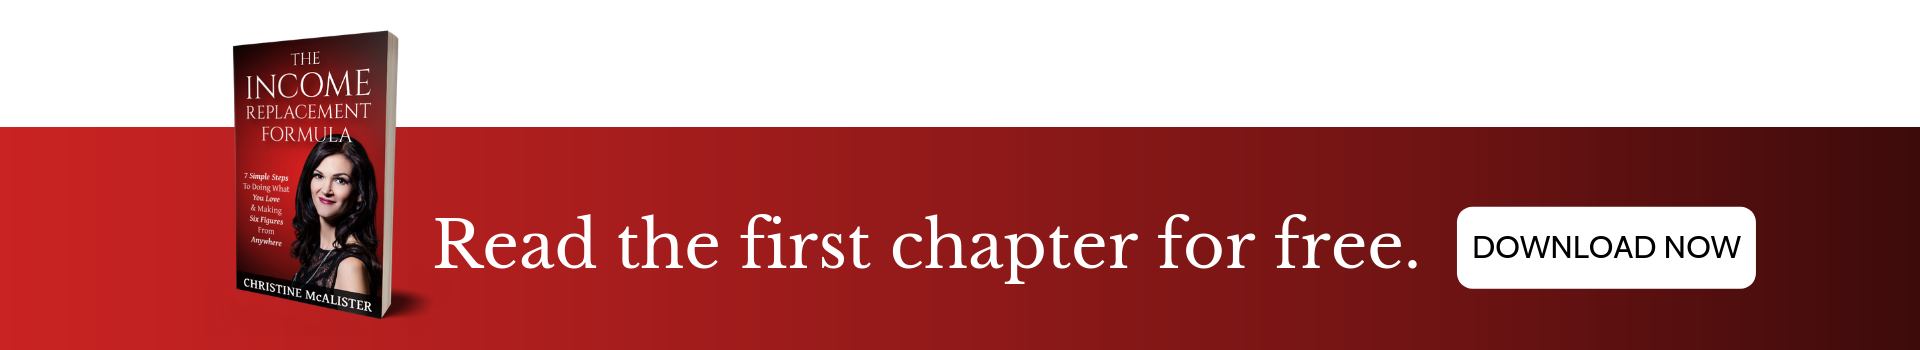 Read the first chapter for free.(1).png